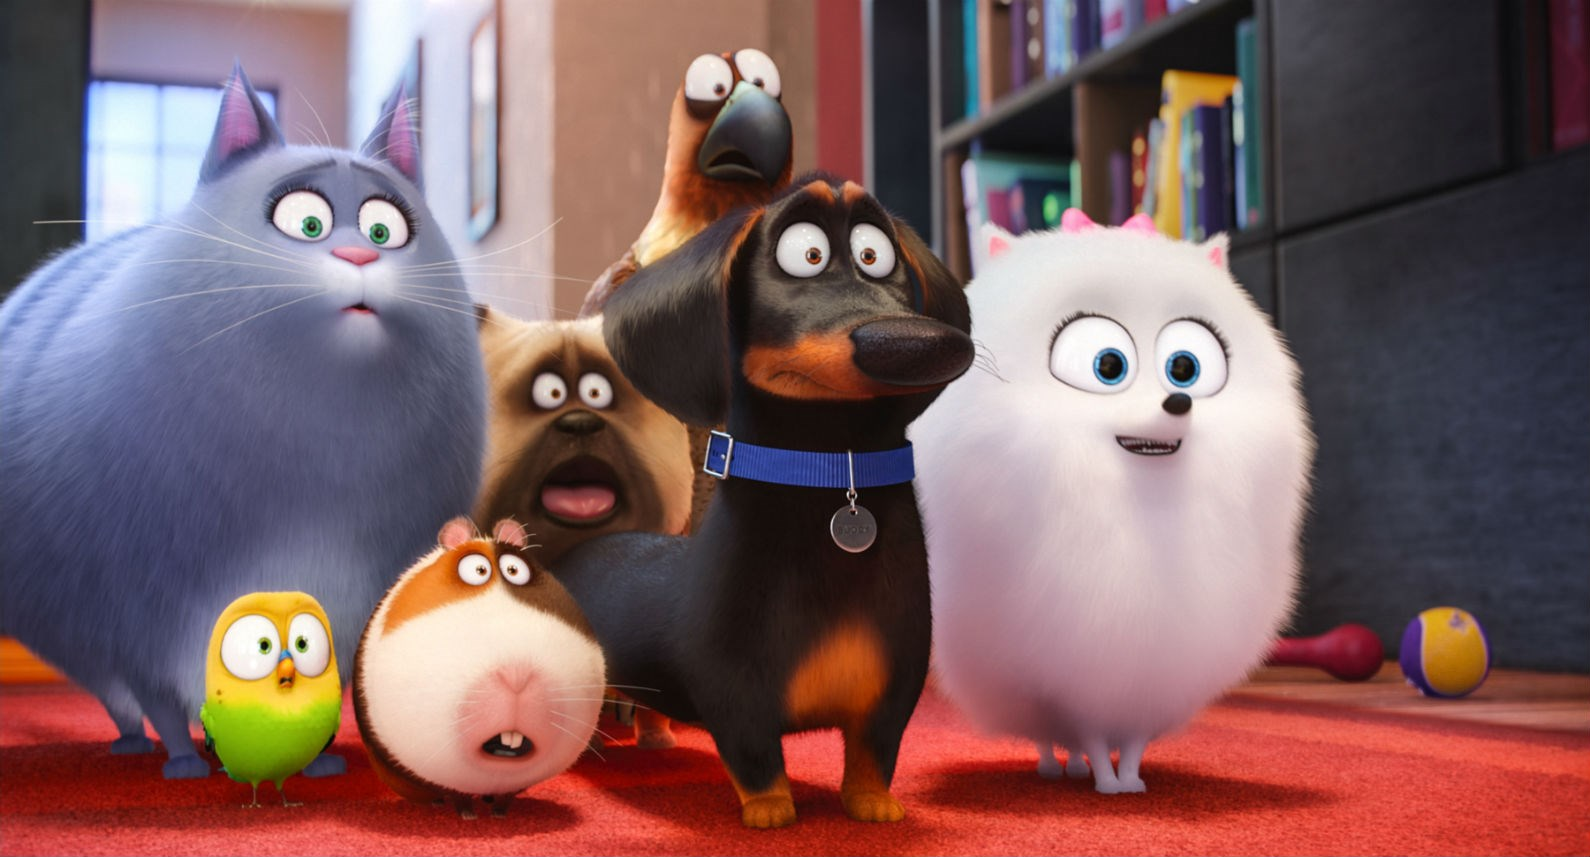 Fun-filled full trailer for The Secret Life Of Pets 2 drops online